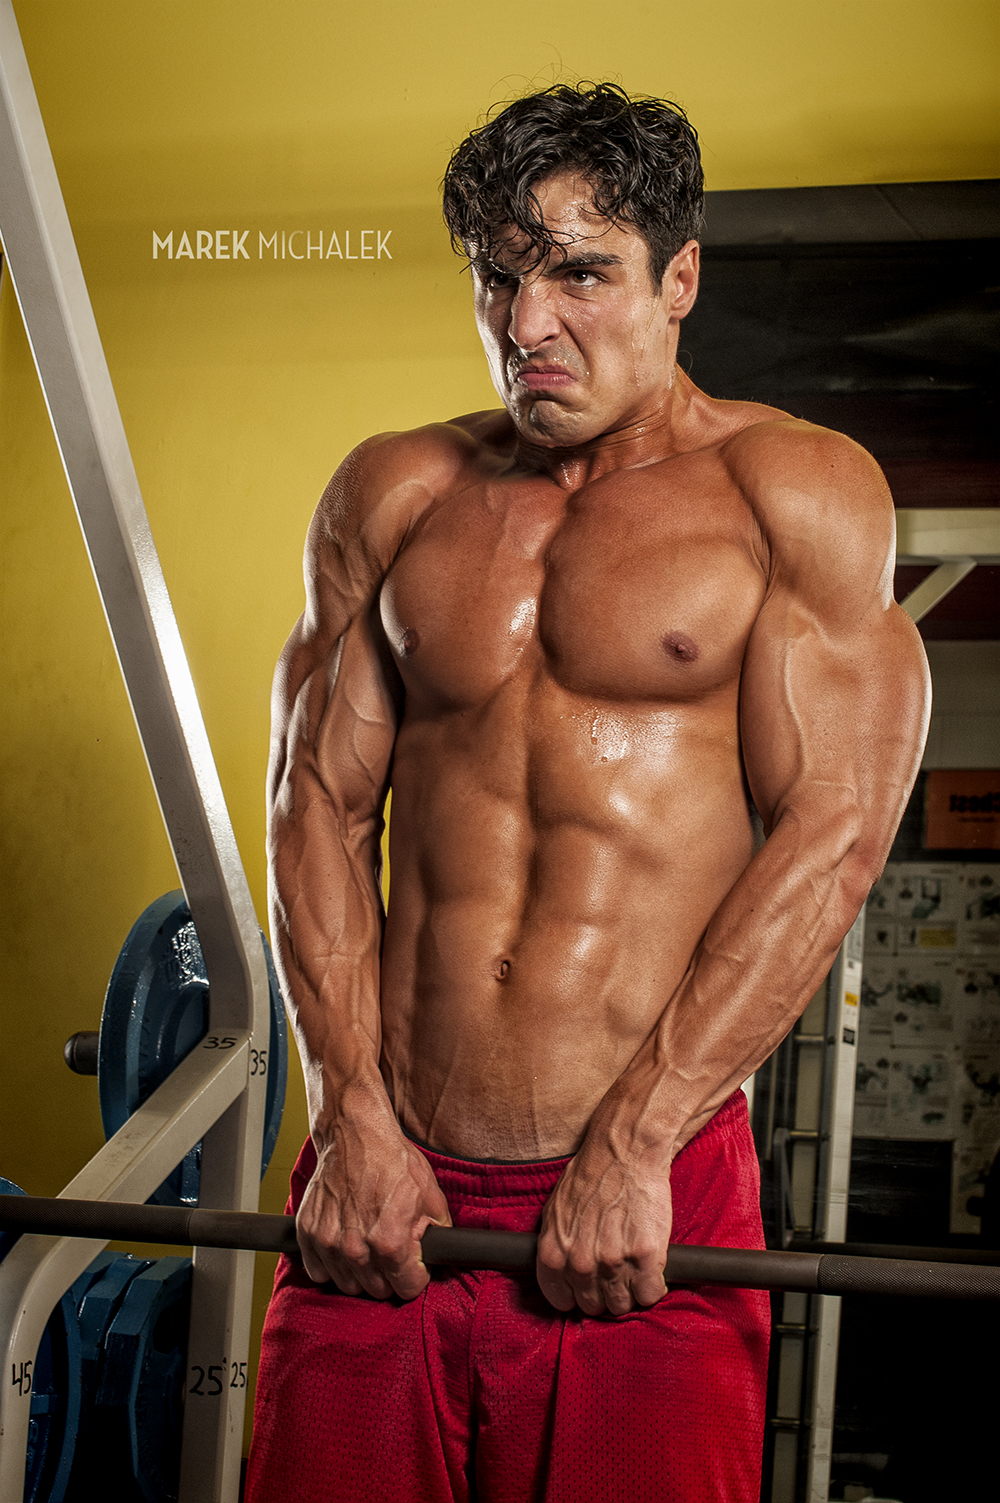 Hamilton Fitness Photographer - Marek Michalek 28.jpg